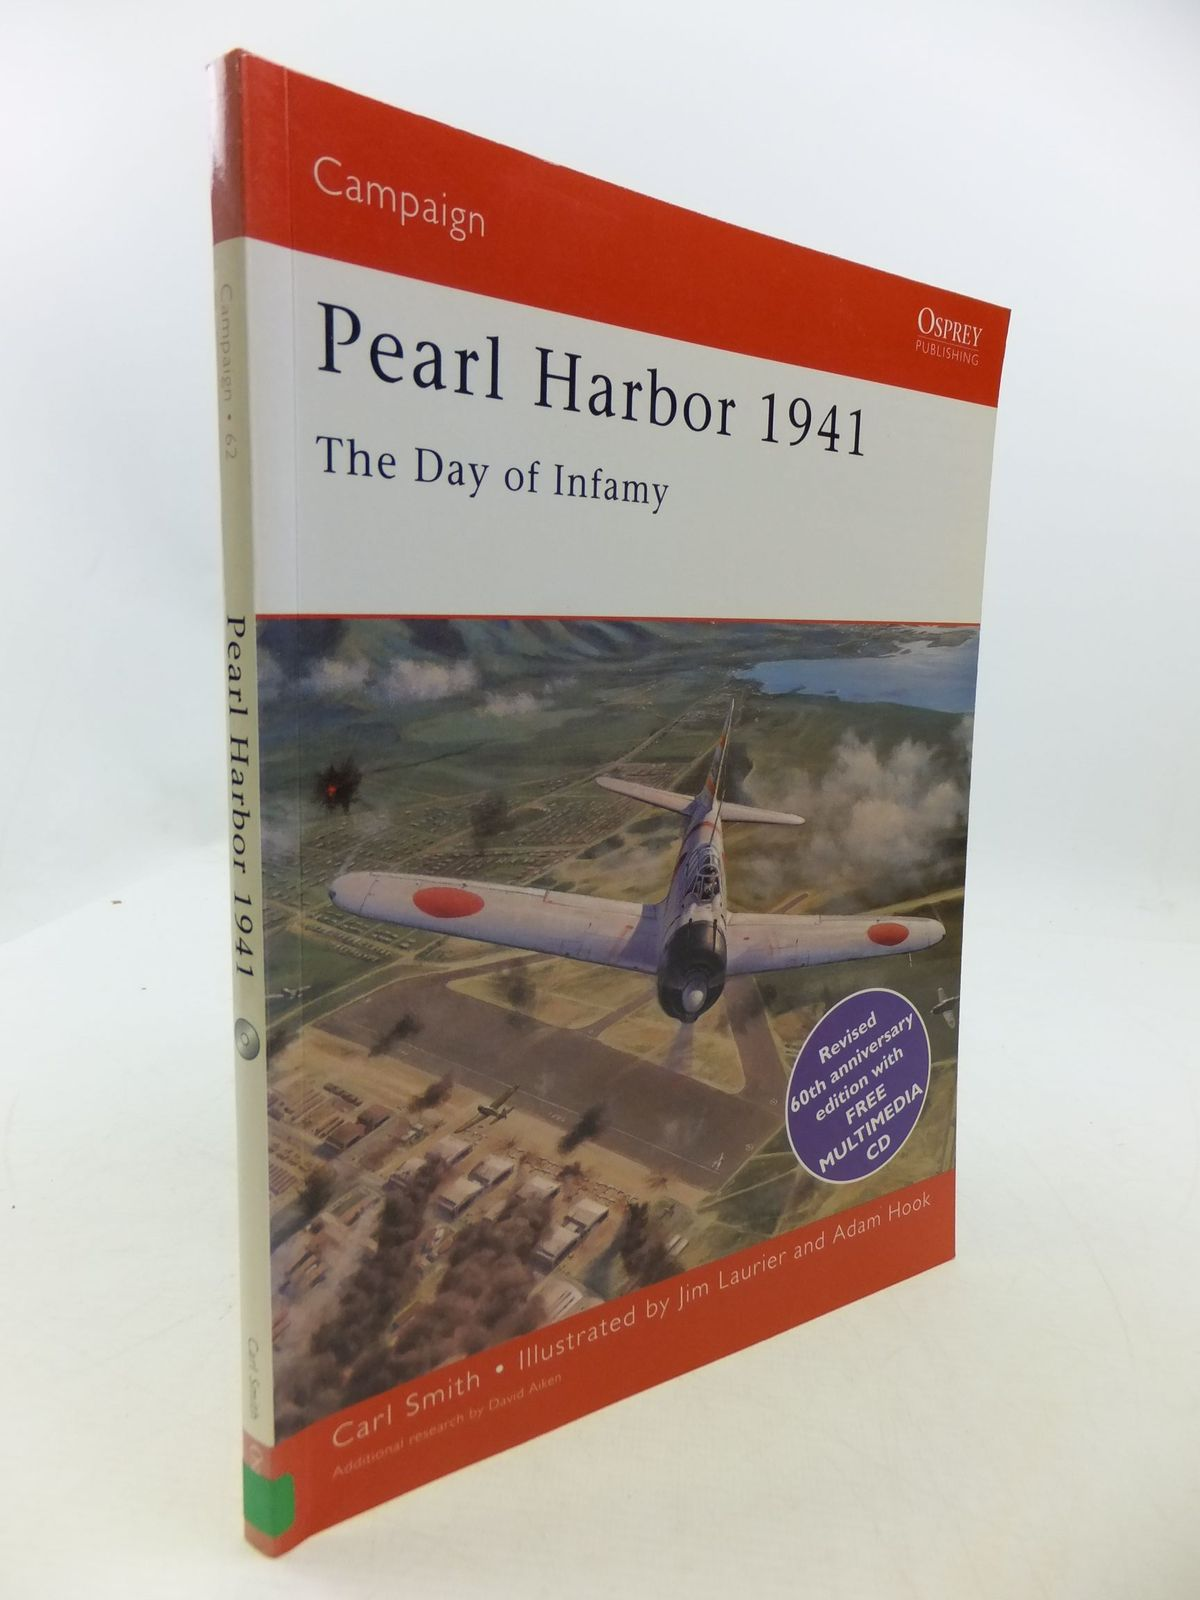 Photo of PEARL HARBOR 1974 THE DAY OF INFAMY written by Smith, Carl illustrated by Laurier, Jim<br />Hook, Adam published by Osprey Publications Ltd (STOCK CODE: 1708442)  for sale by Stella & Rose's Books